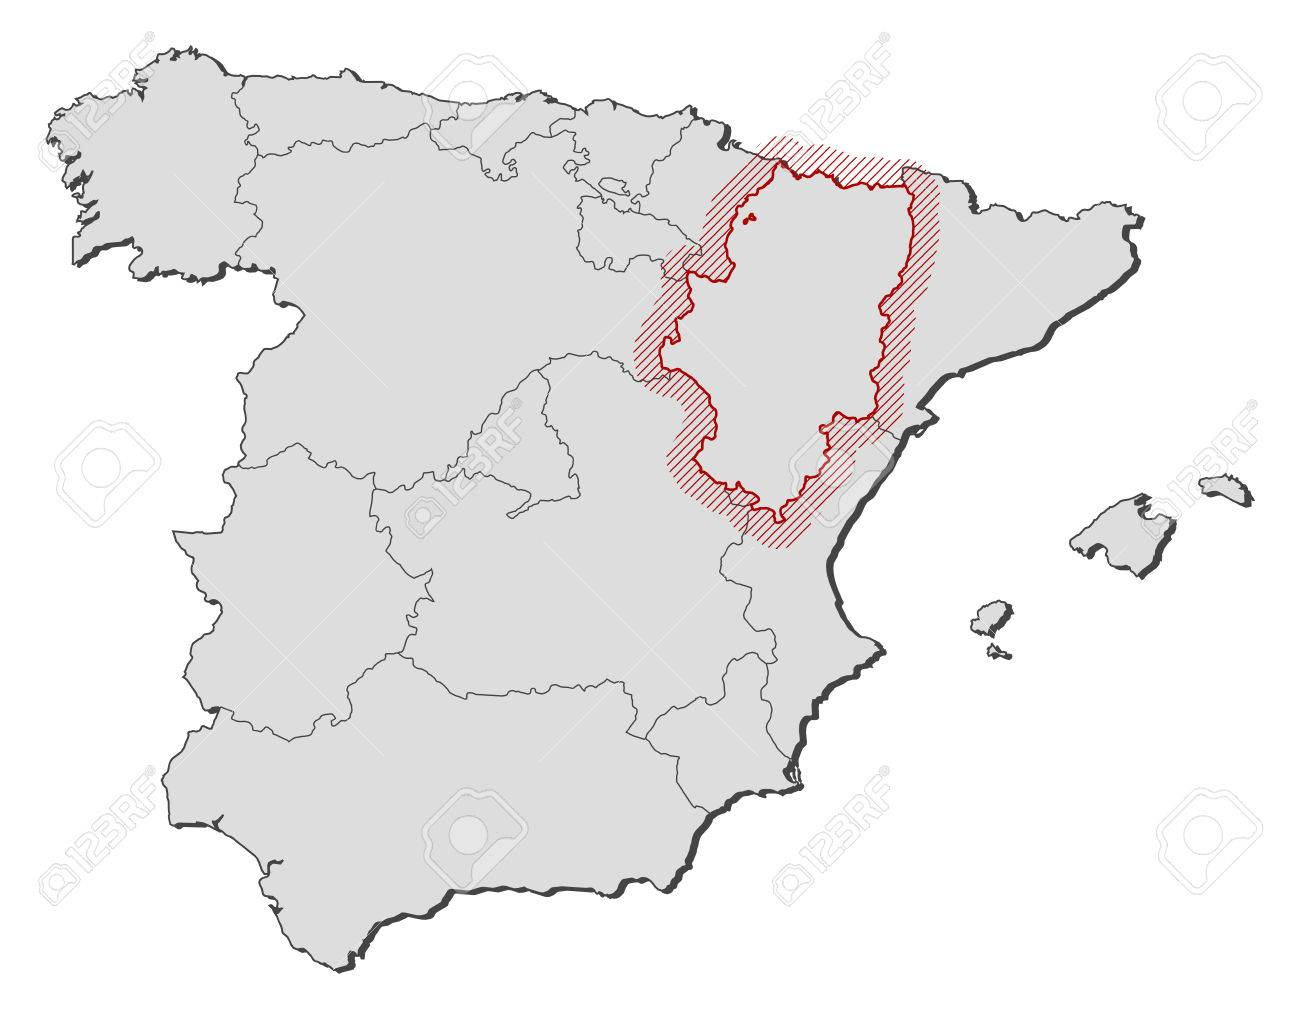 Map Of Spain With The Provinces Aragon Is Highlighted By A Hatching